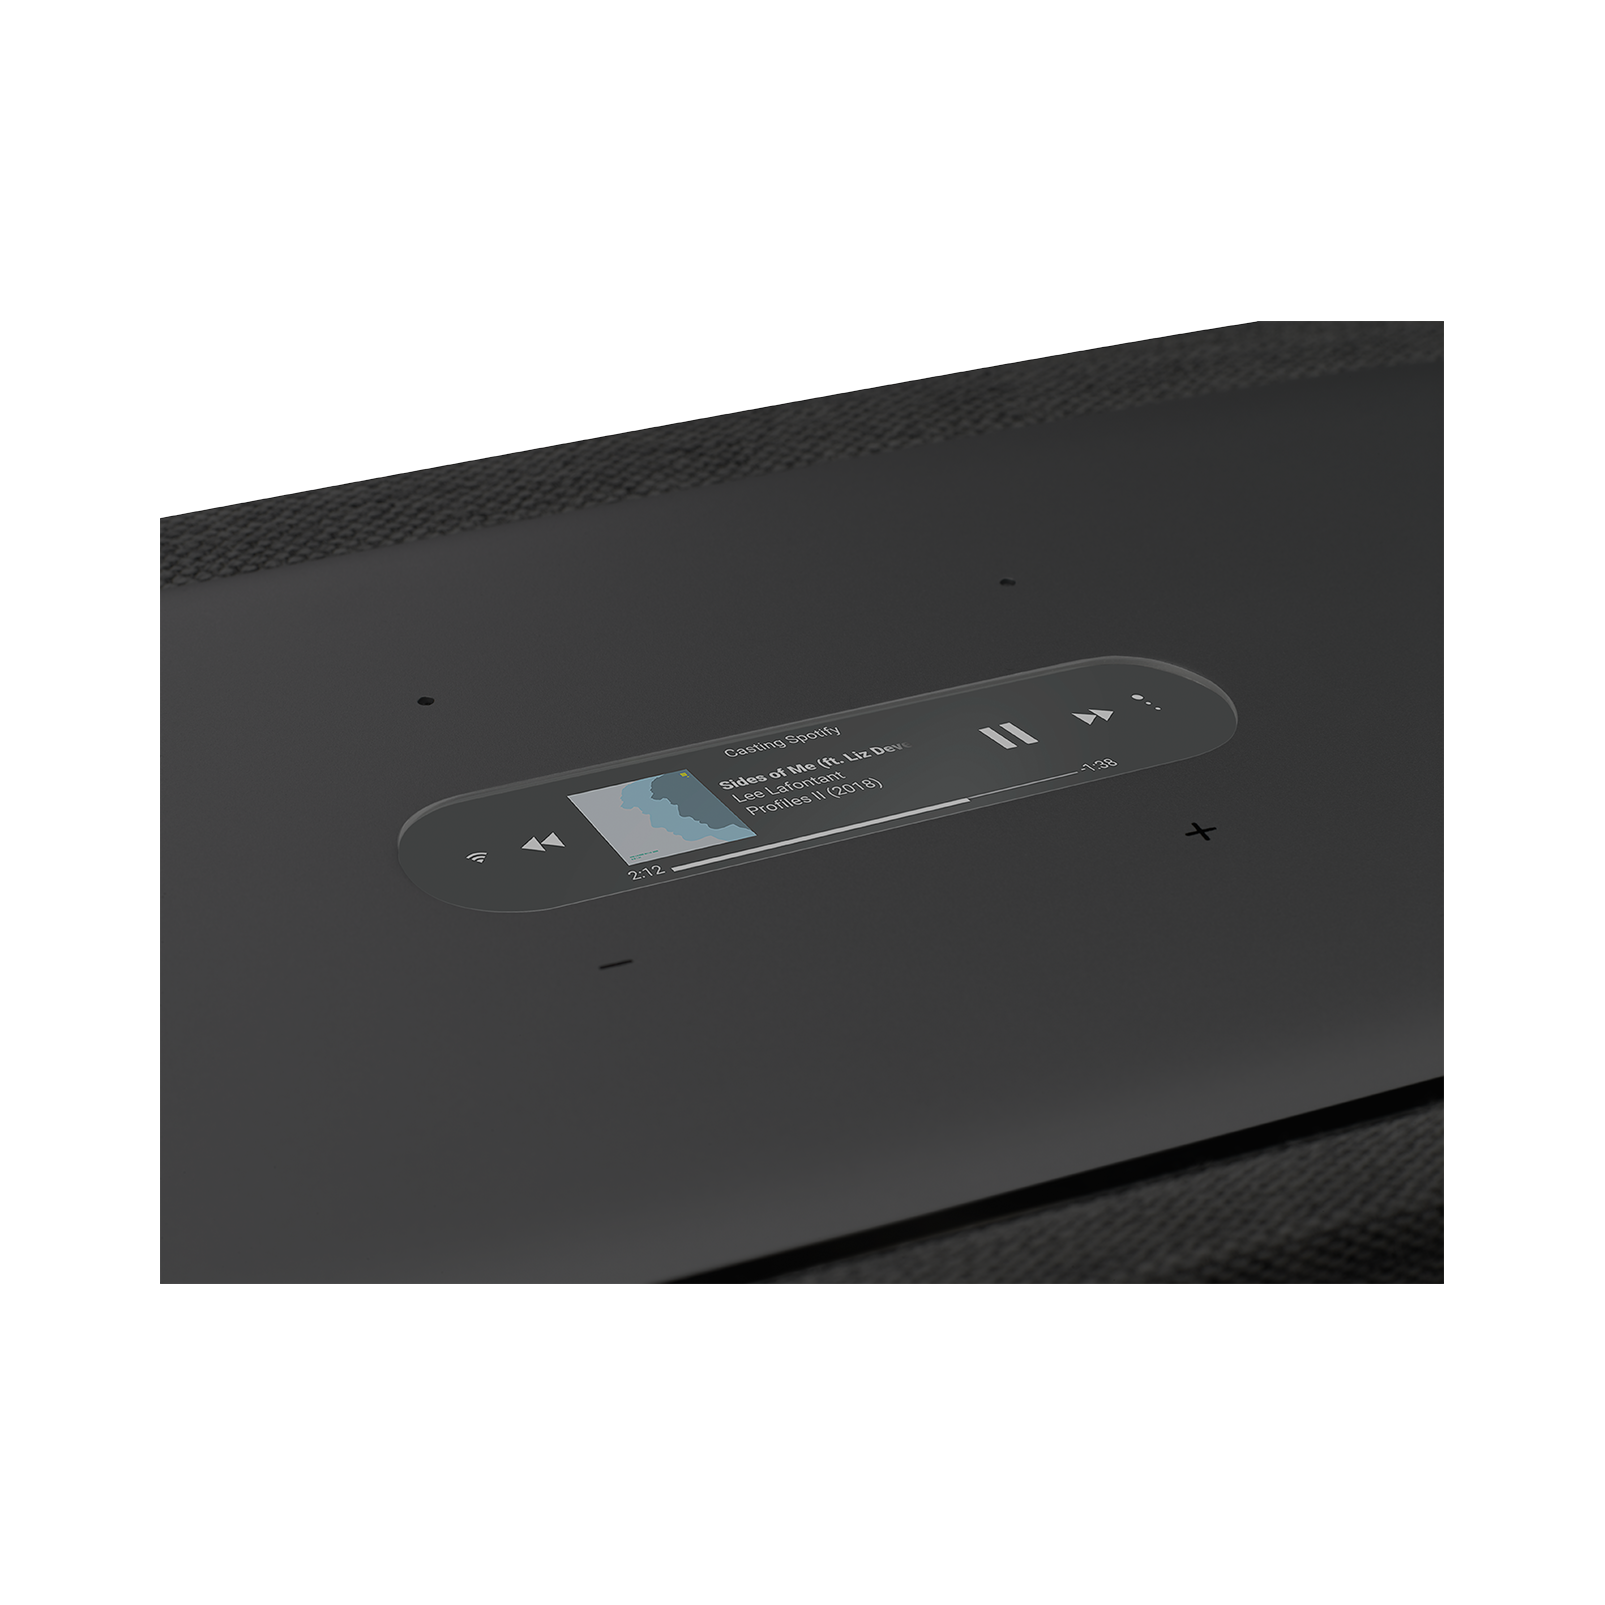 Harman Kardon Citation 500 - Black - Large Tabletop Smart Home Loudspeaker System - Detailshot 1